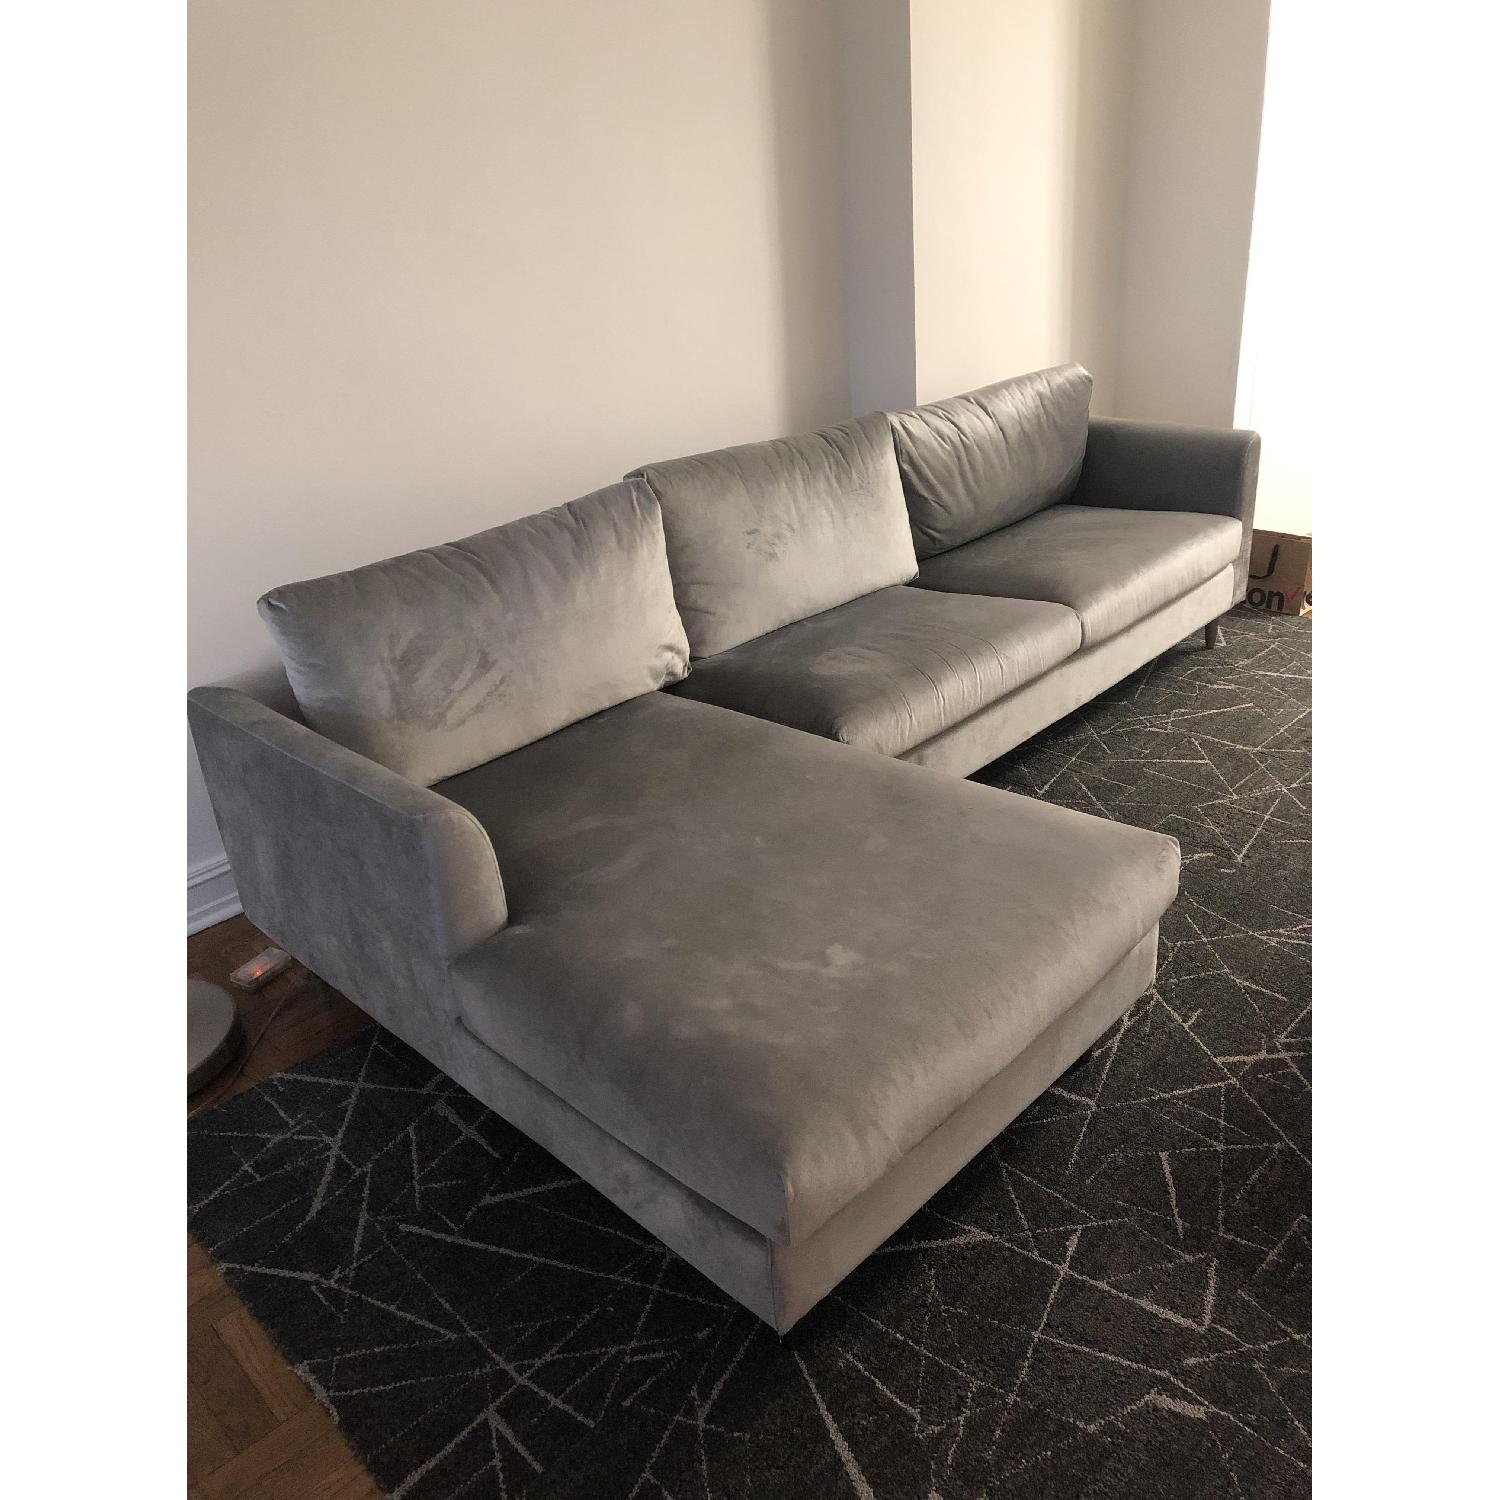 Interior Define Owens Sectional Sofa w/ Left Chaise - image-1